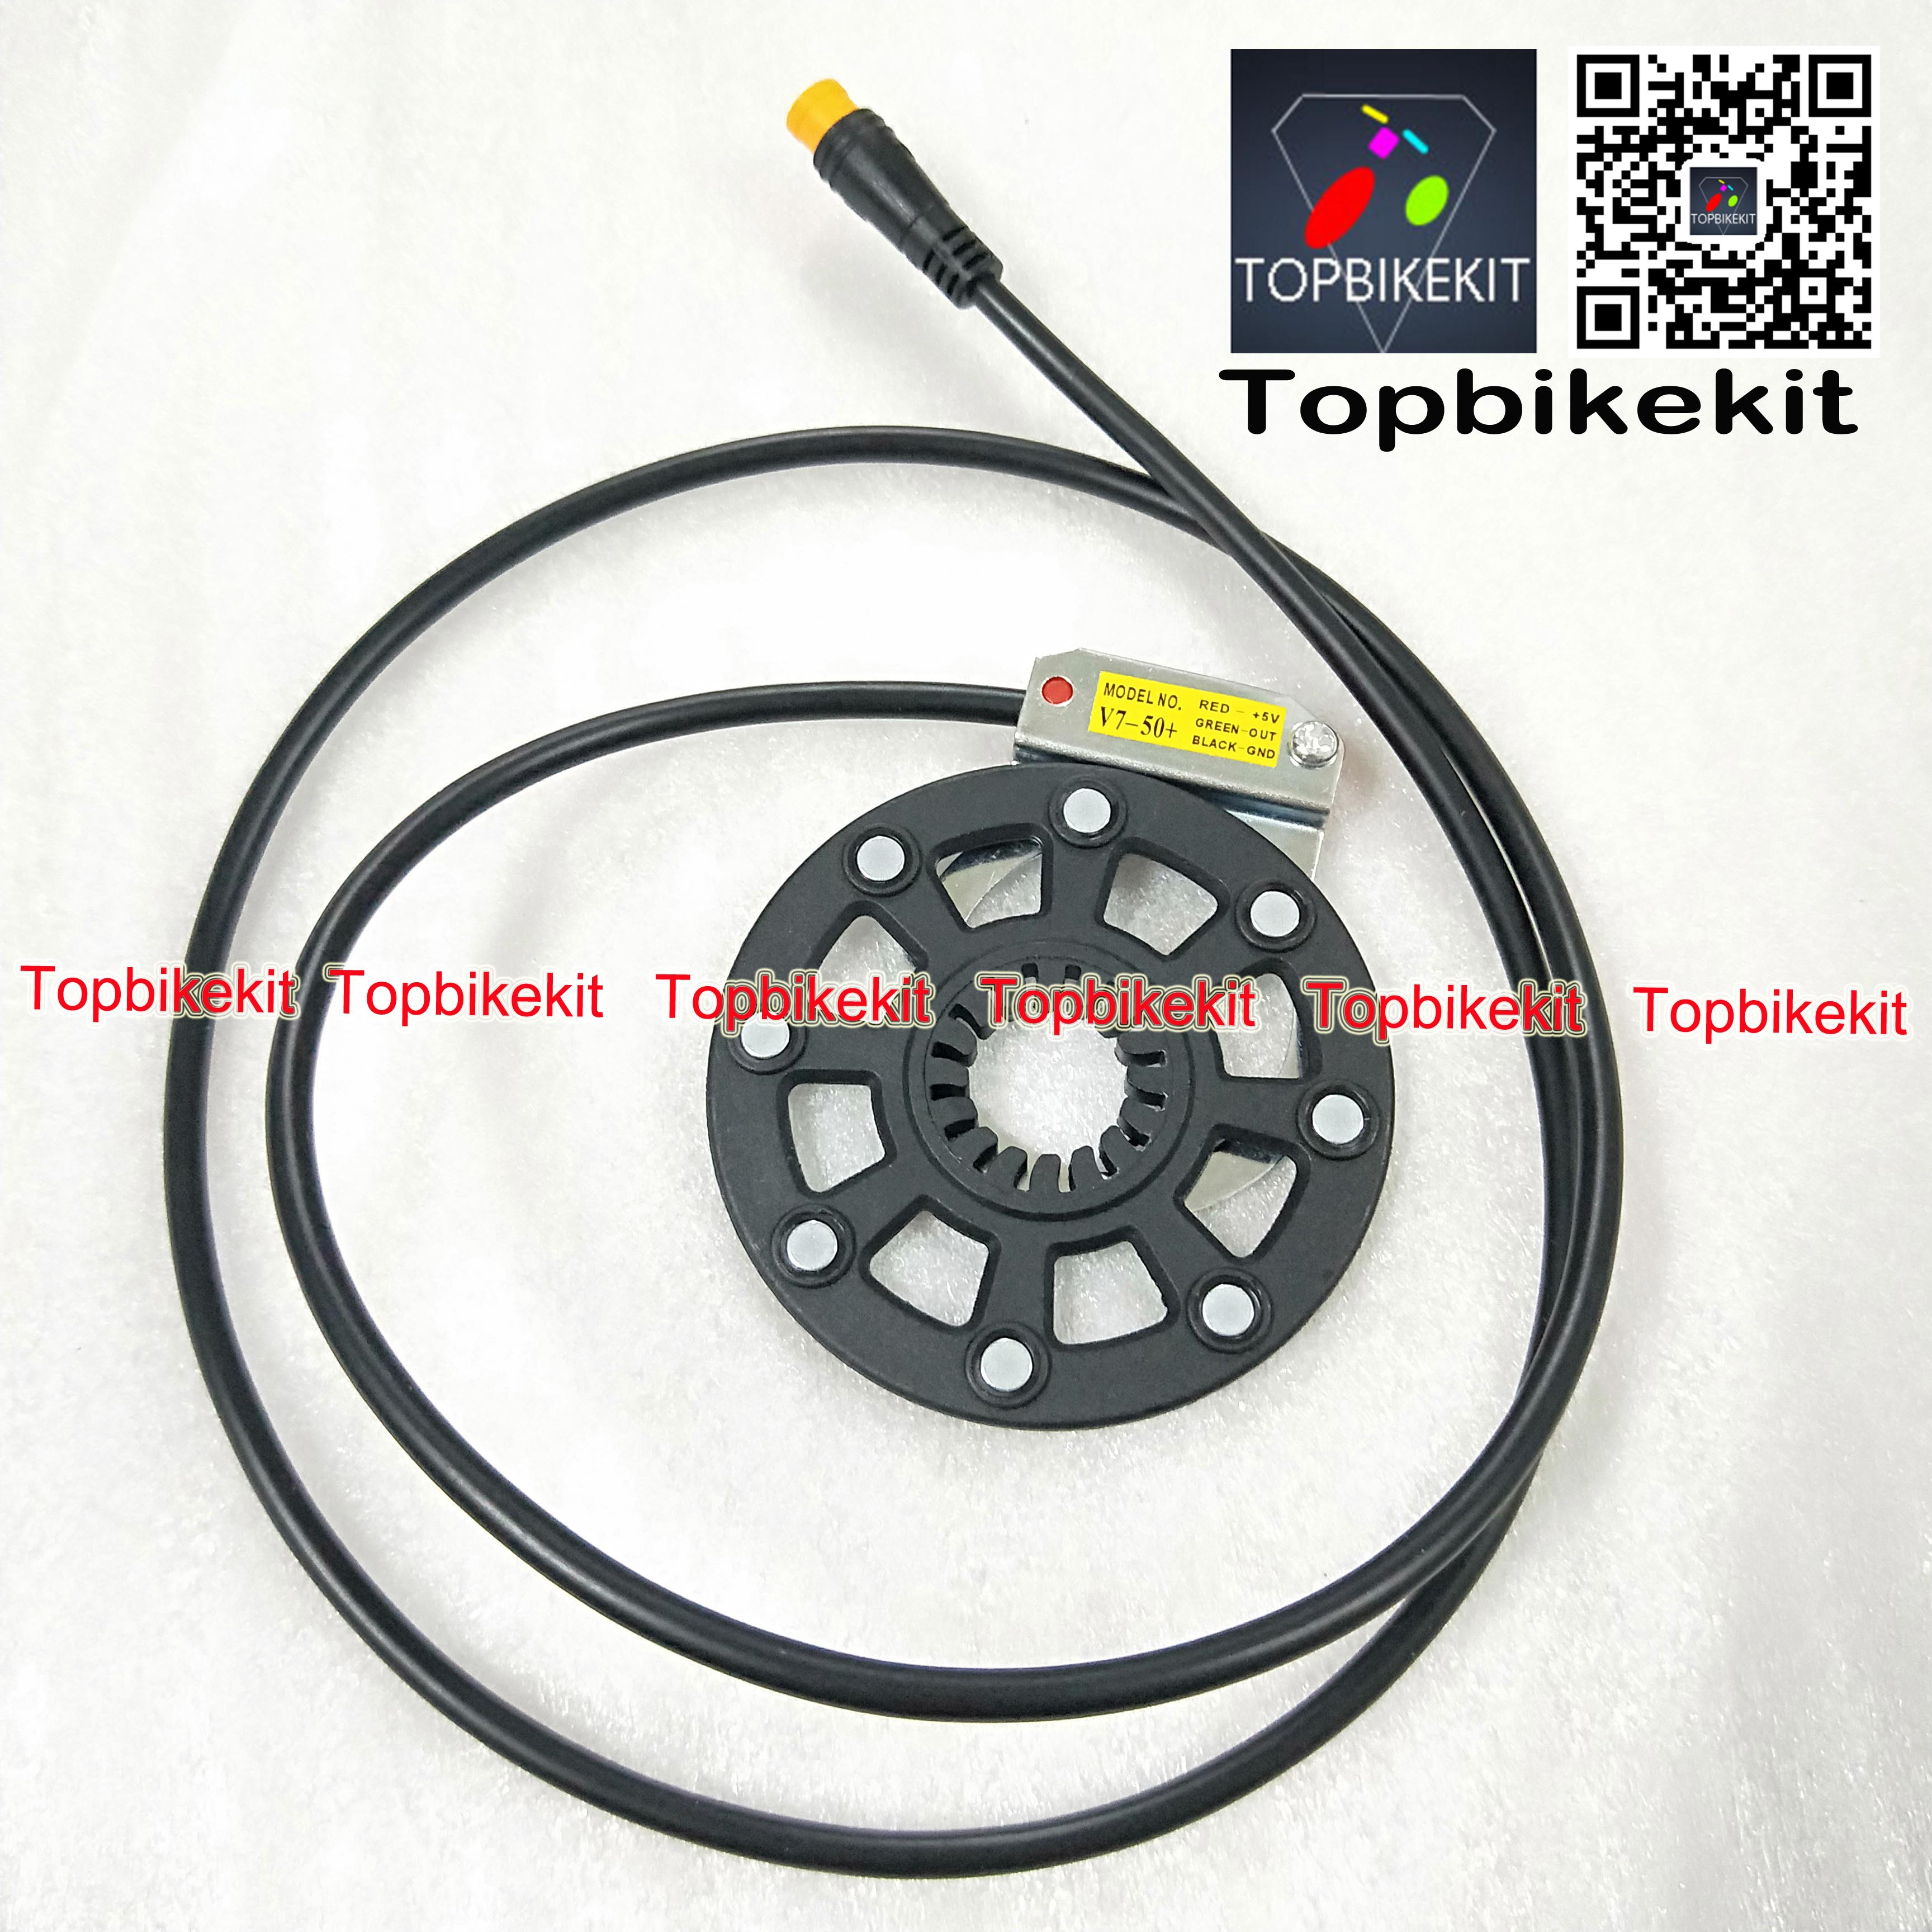 Speed Sensor with 3pins connector 2 meters Ebike accessories ebike parts